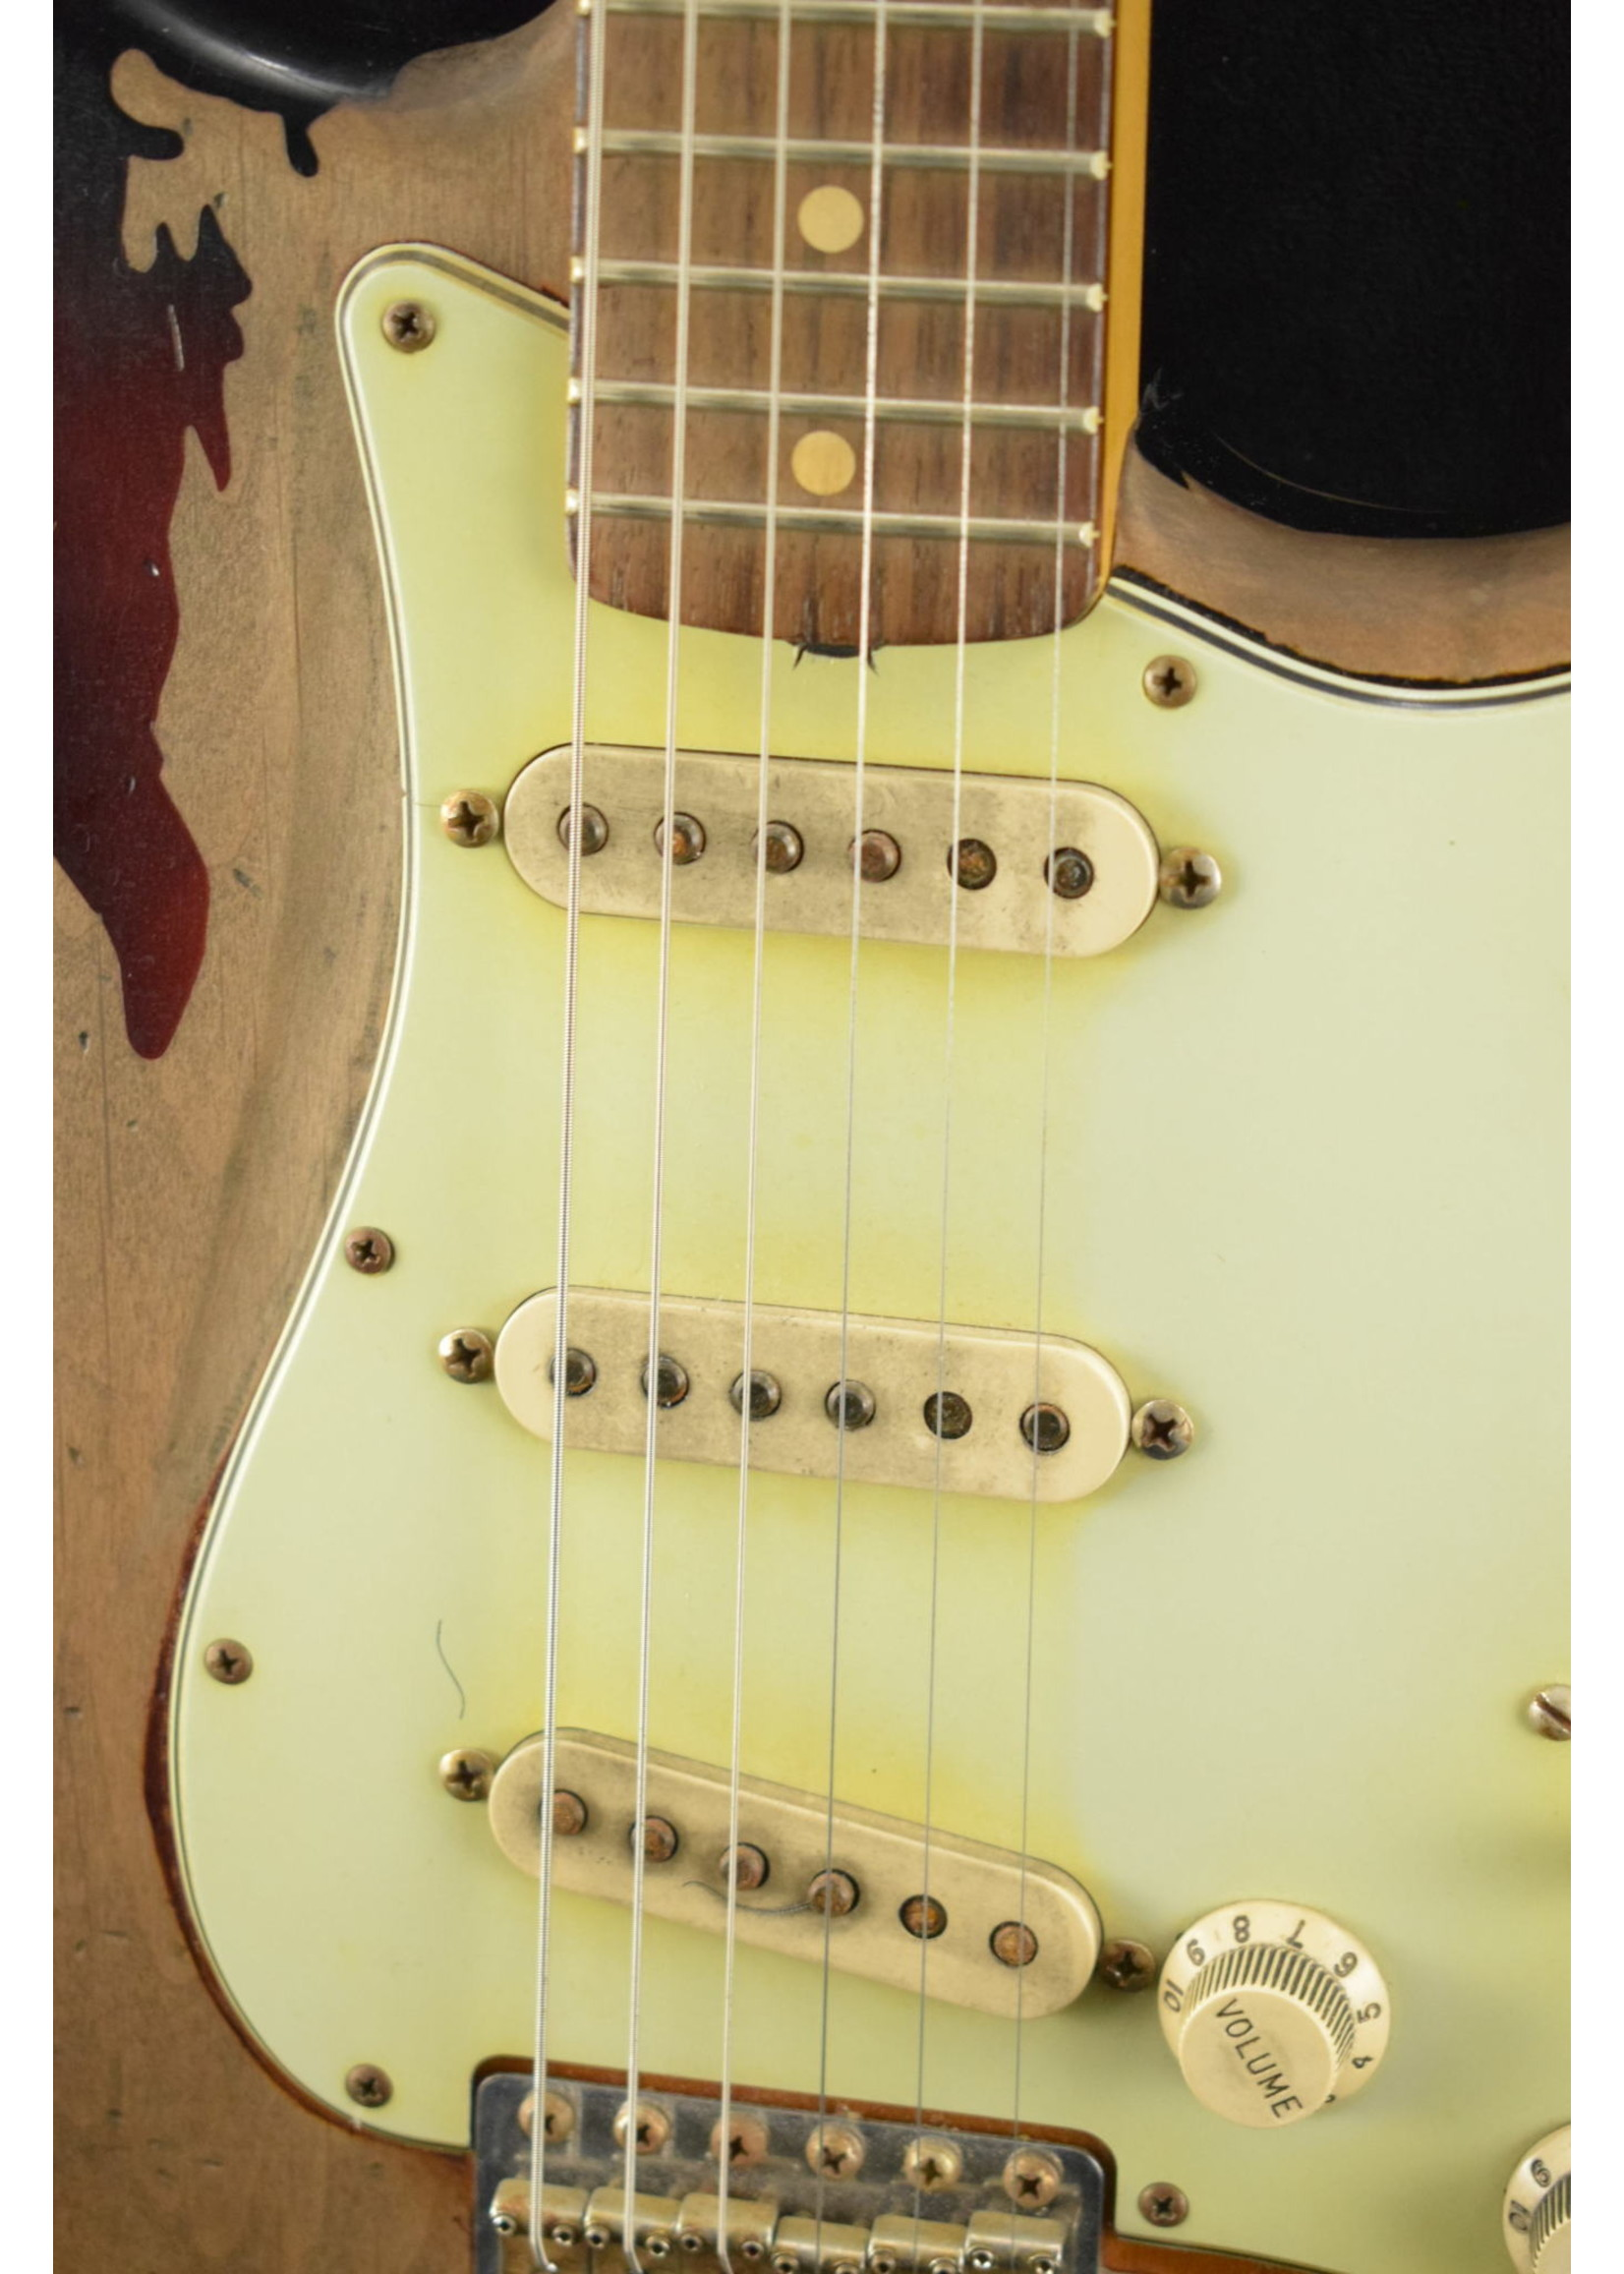 Fender Fender Used Custom Shop Rory Gallagher Signature Stratocaster